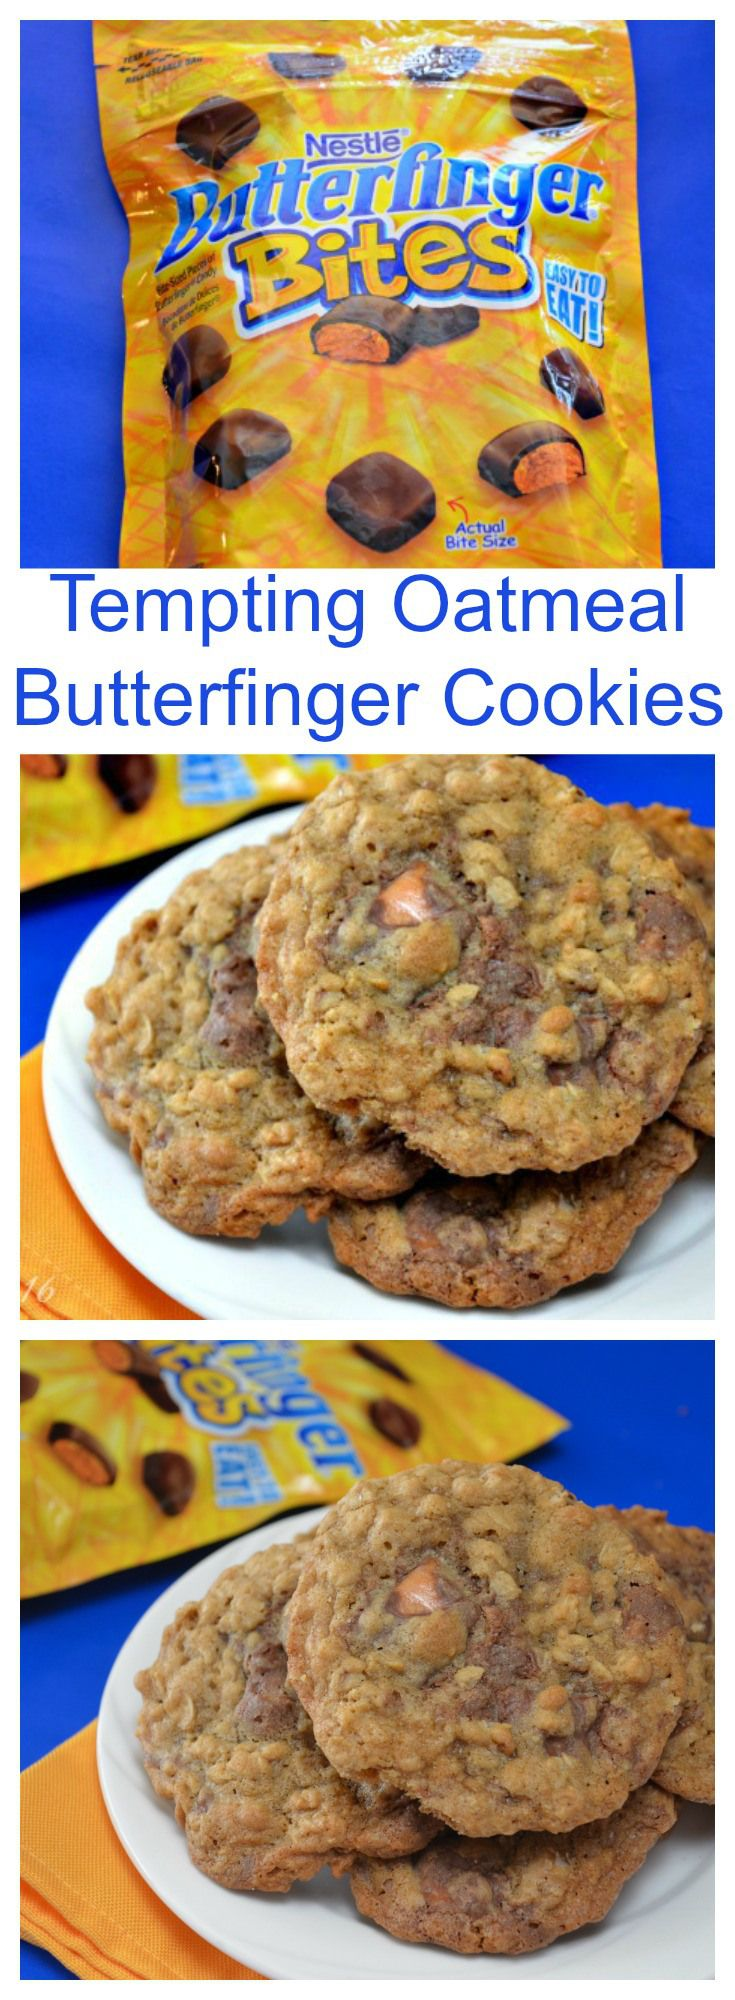 Tempting #Oatmeal #Butterfinger #Cookies - include of my favorite things. After finding Butterfinger Bites which are unwrapped and bite size, I had to try them in my favorite Oatmeal cookies. #Oatmeal Butterfinger #Cookies #recipe #desserts